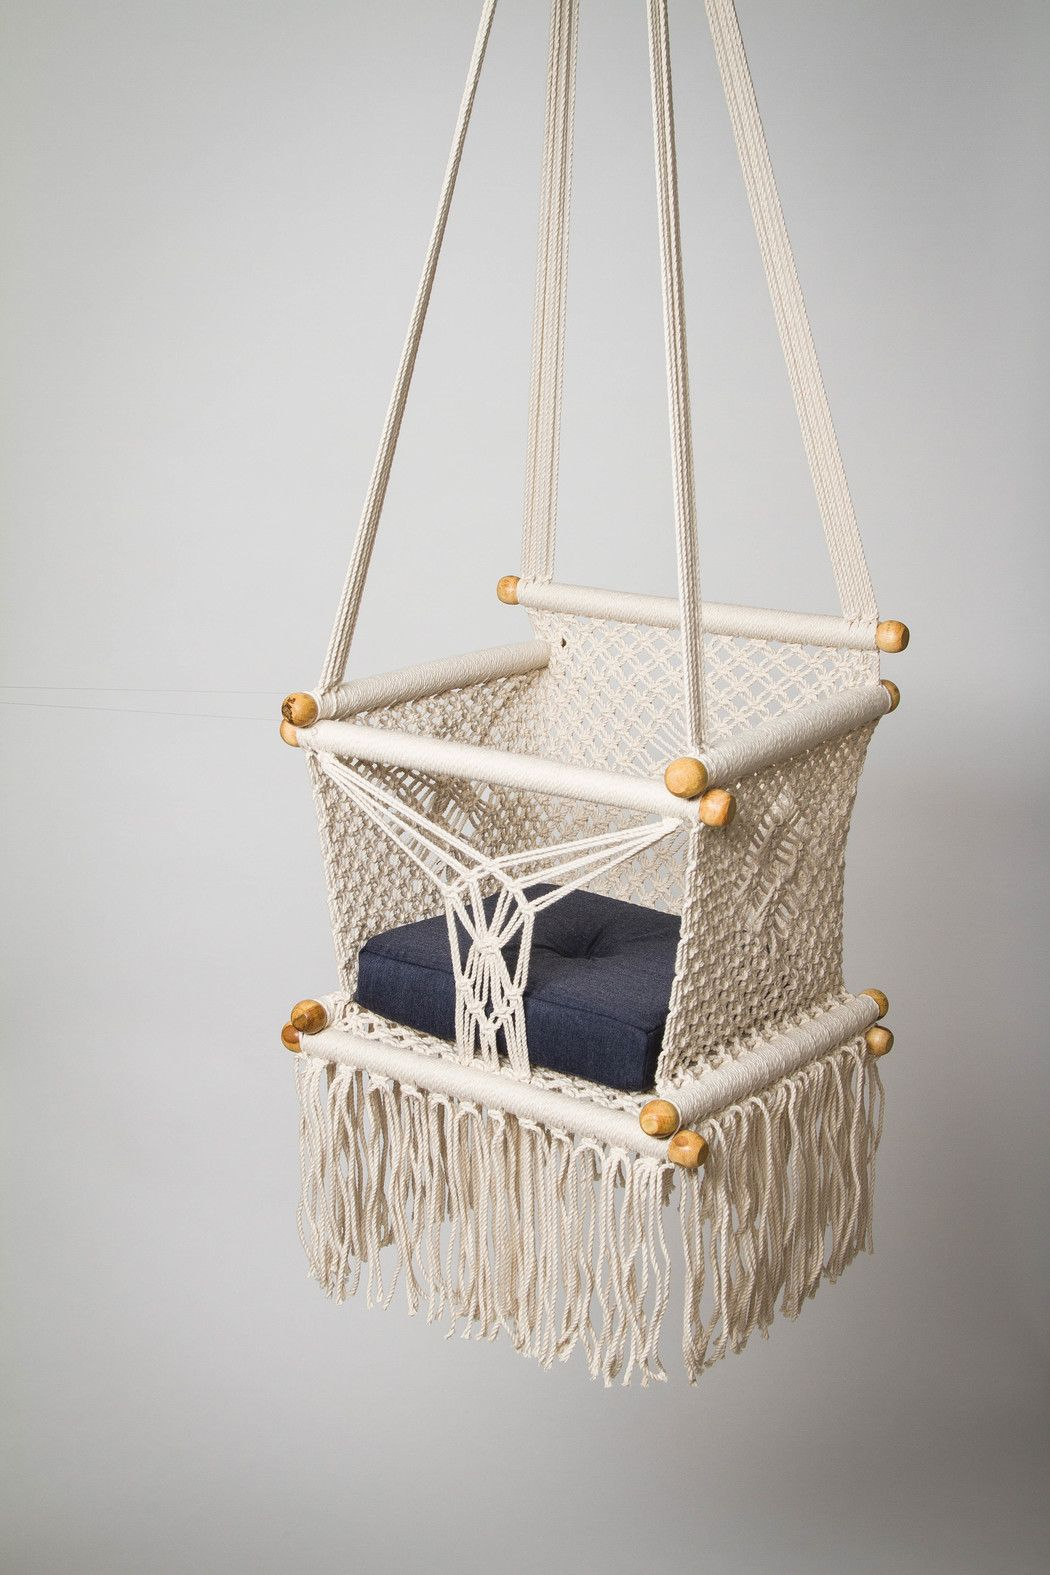 "Baby Swing Chair 14"" in Macrame. 1 Year Warranty"